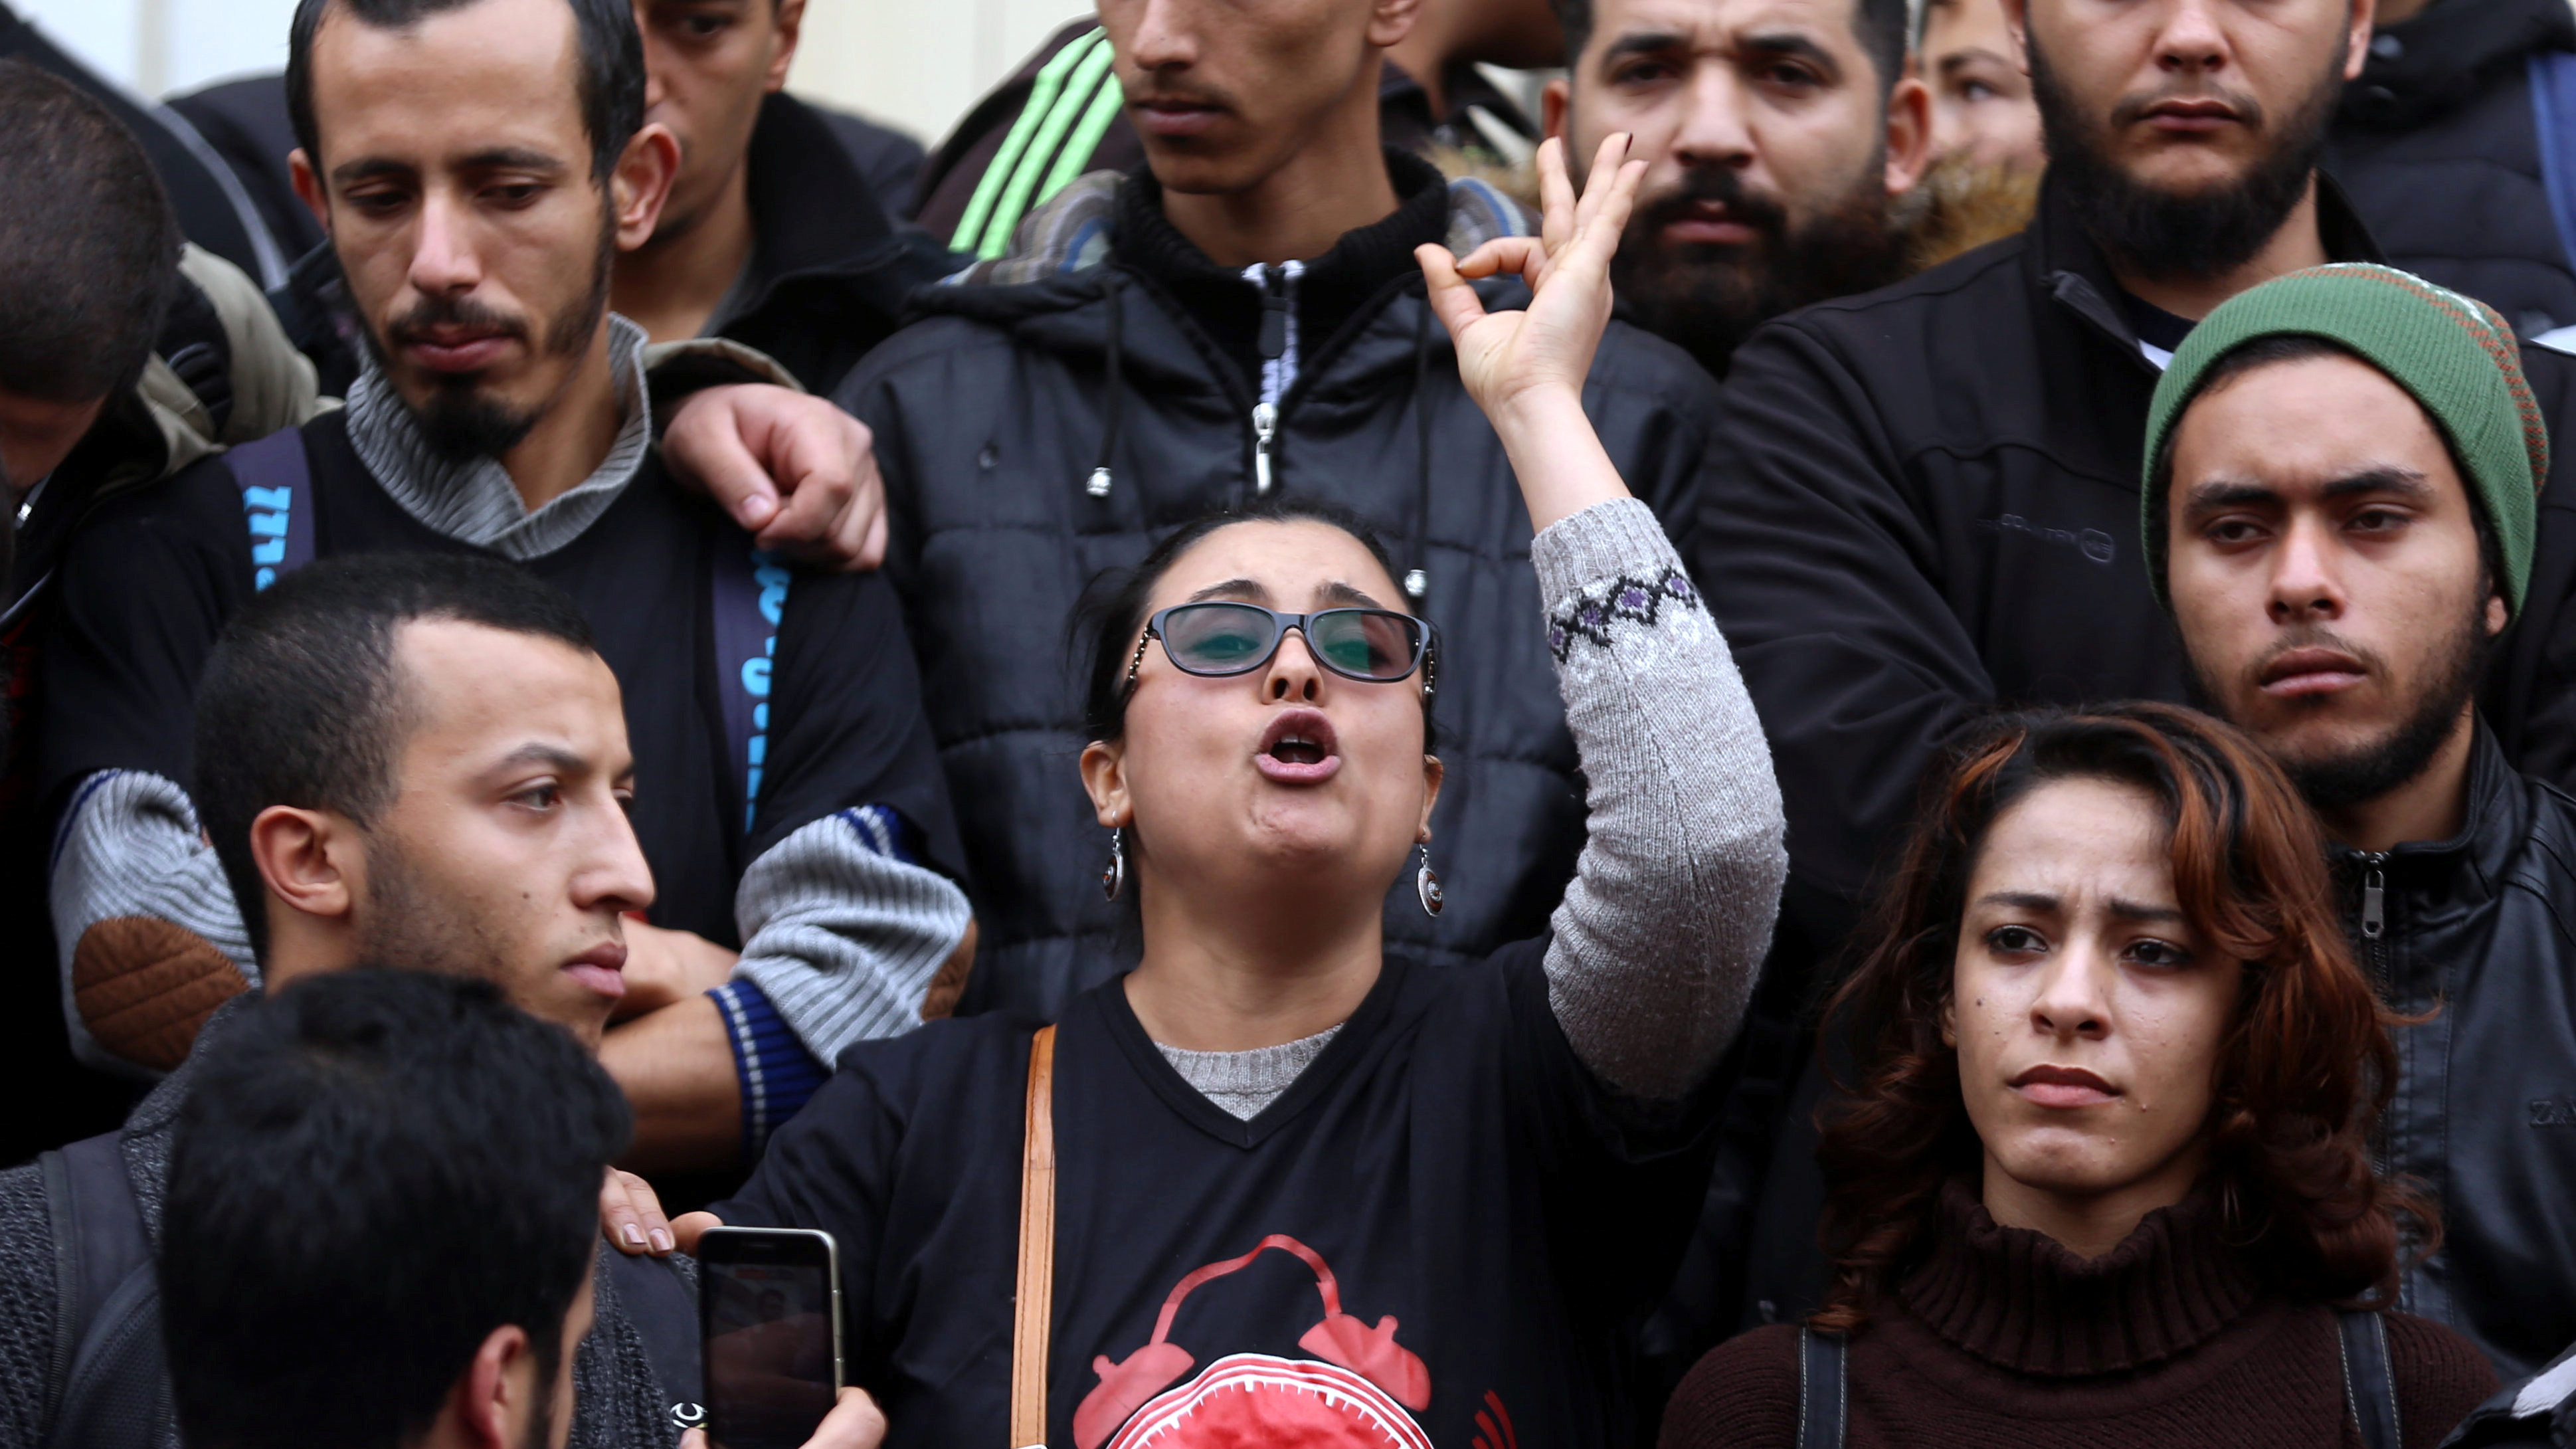 A demonstrating graduate shouts slogans during protests against rising prices and tax increases in Tunis on Tuesday